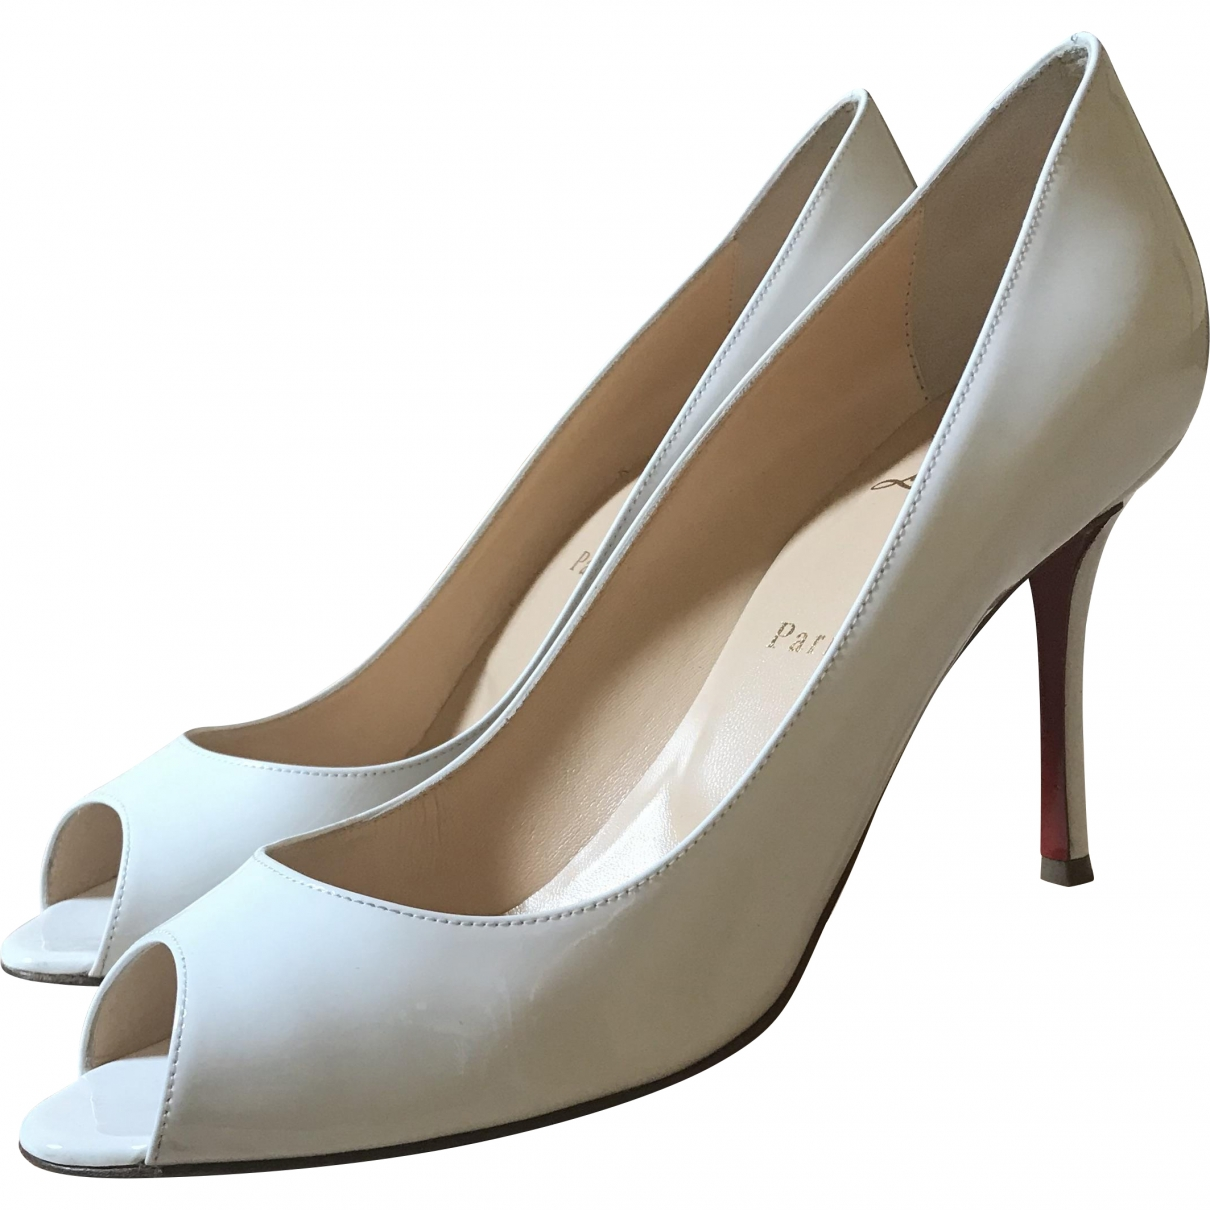 Christian Louboutin \N White Patent leather Heels for Women 39.5 EU